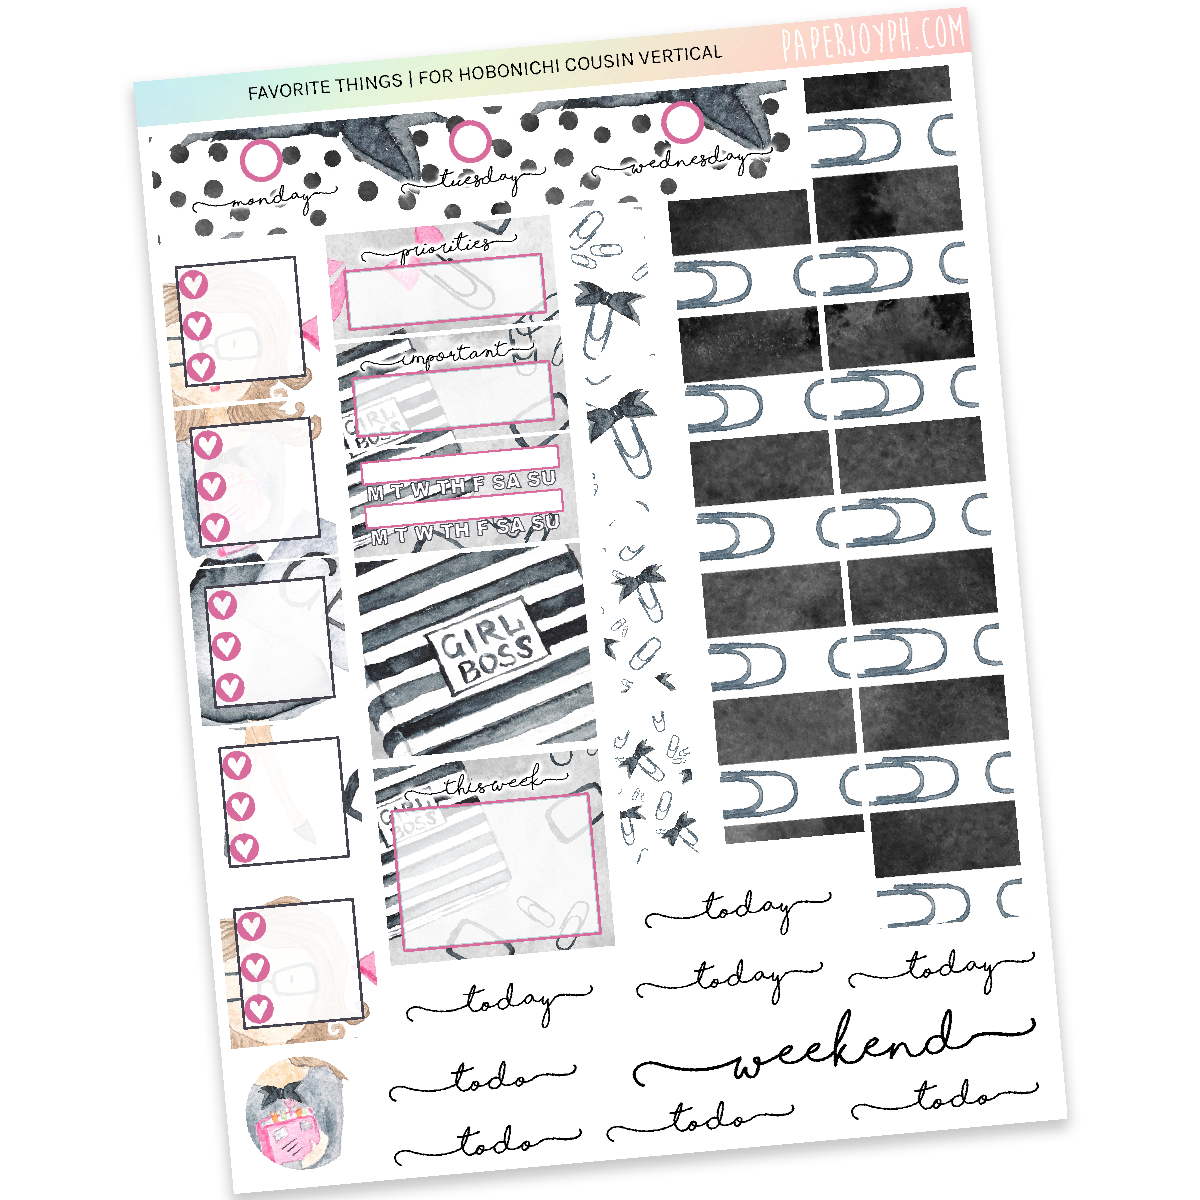 HOBONICHI COUSIN | VERTICAL STICKER KIT | Favorite Things